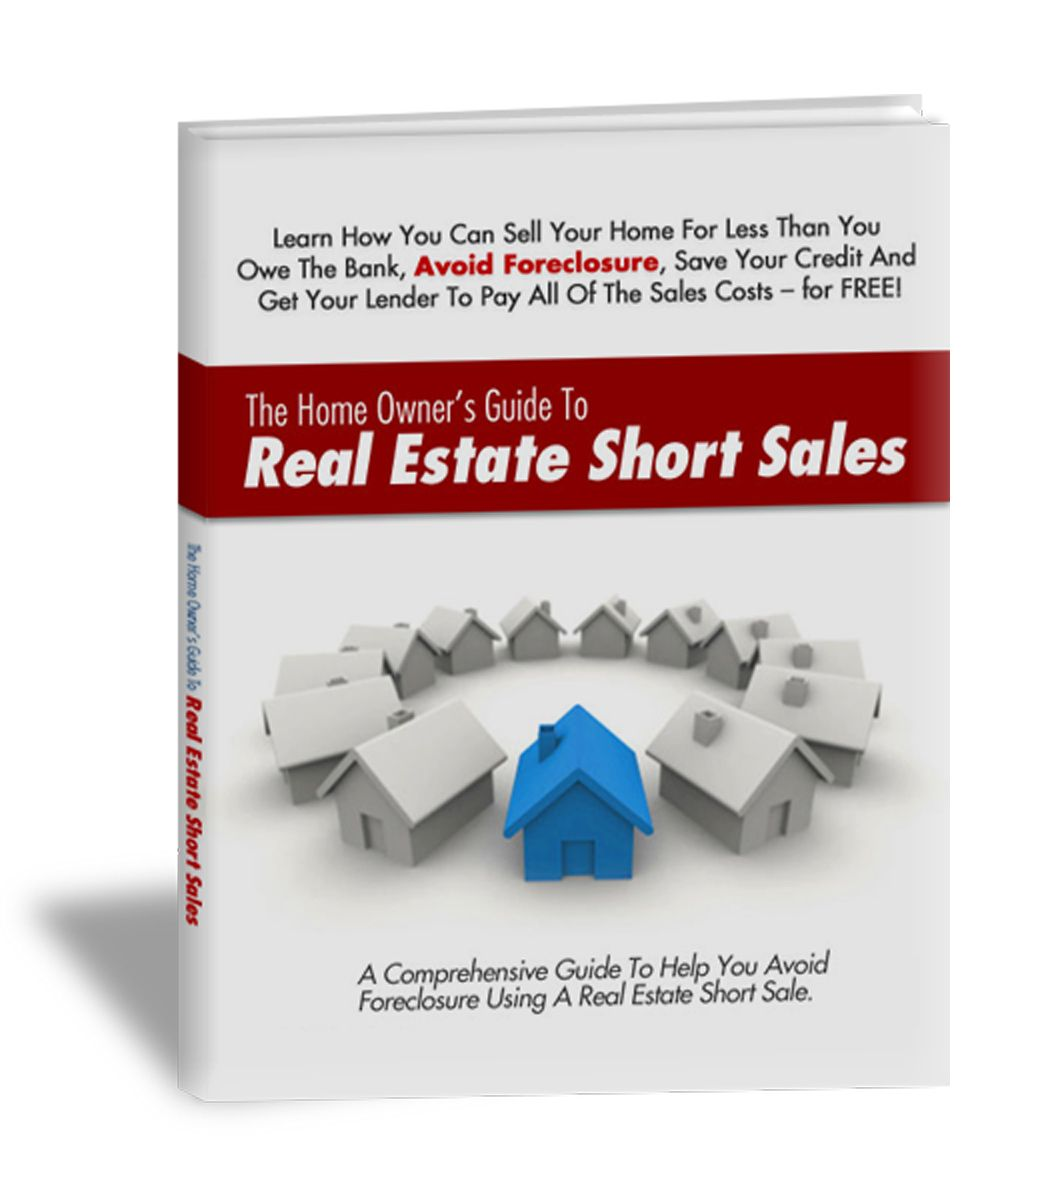 FREE Short Sale Help ....All Banks!